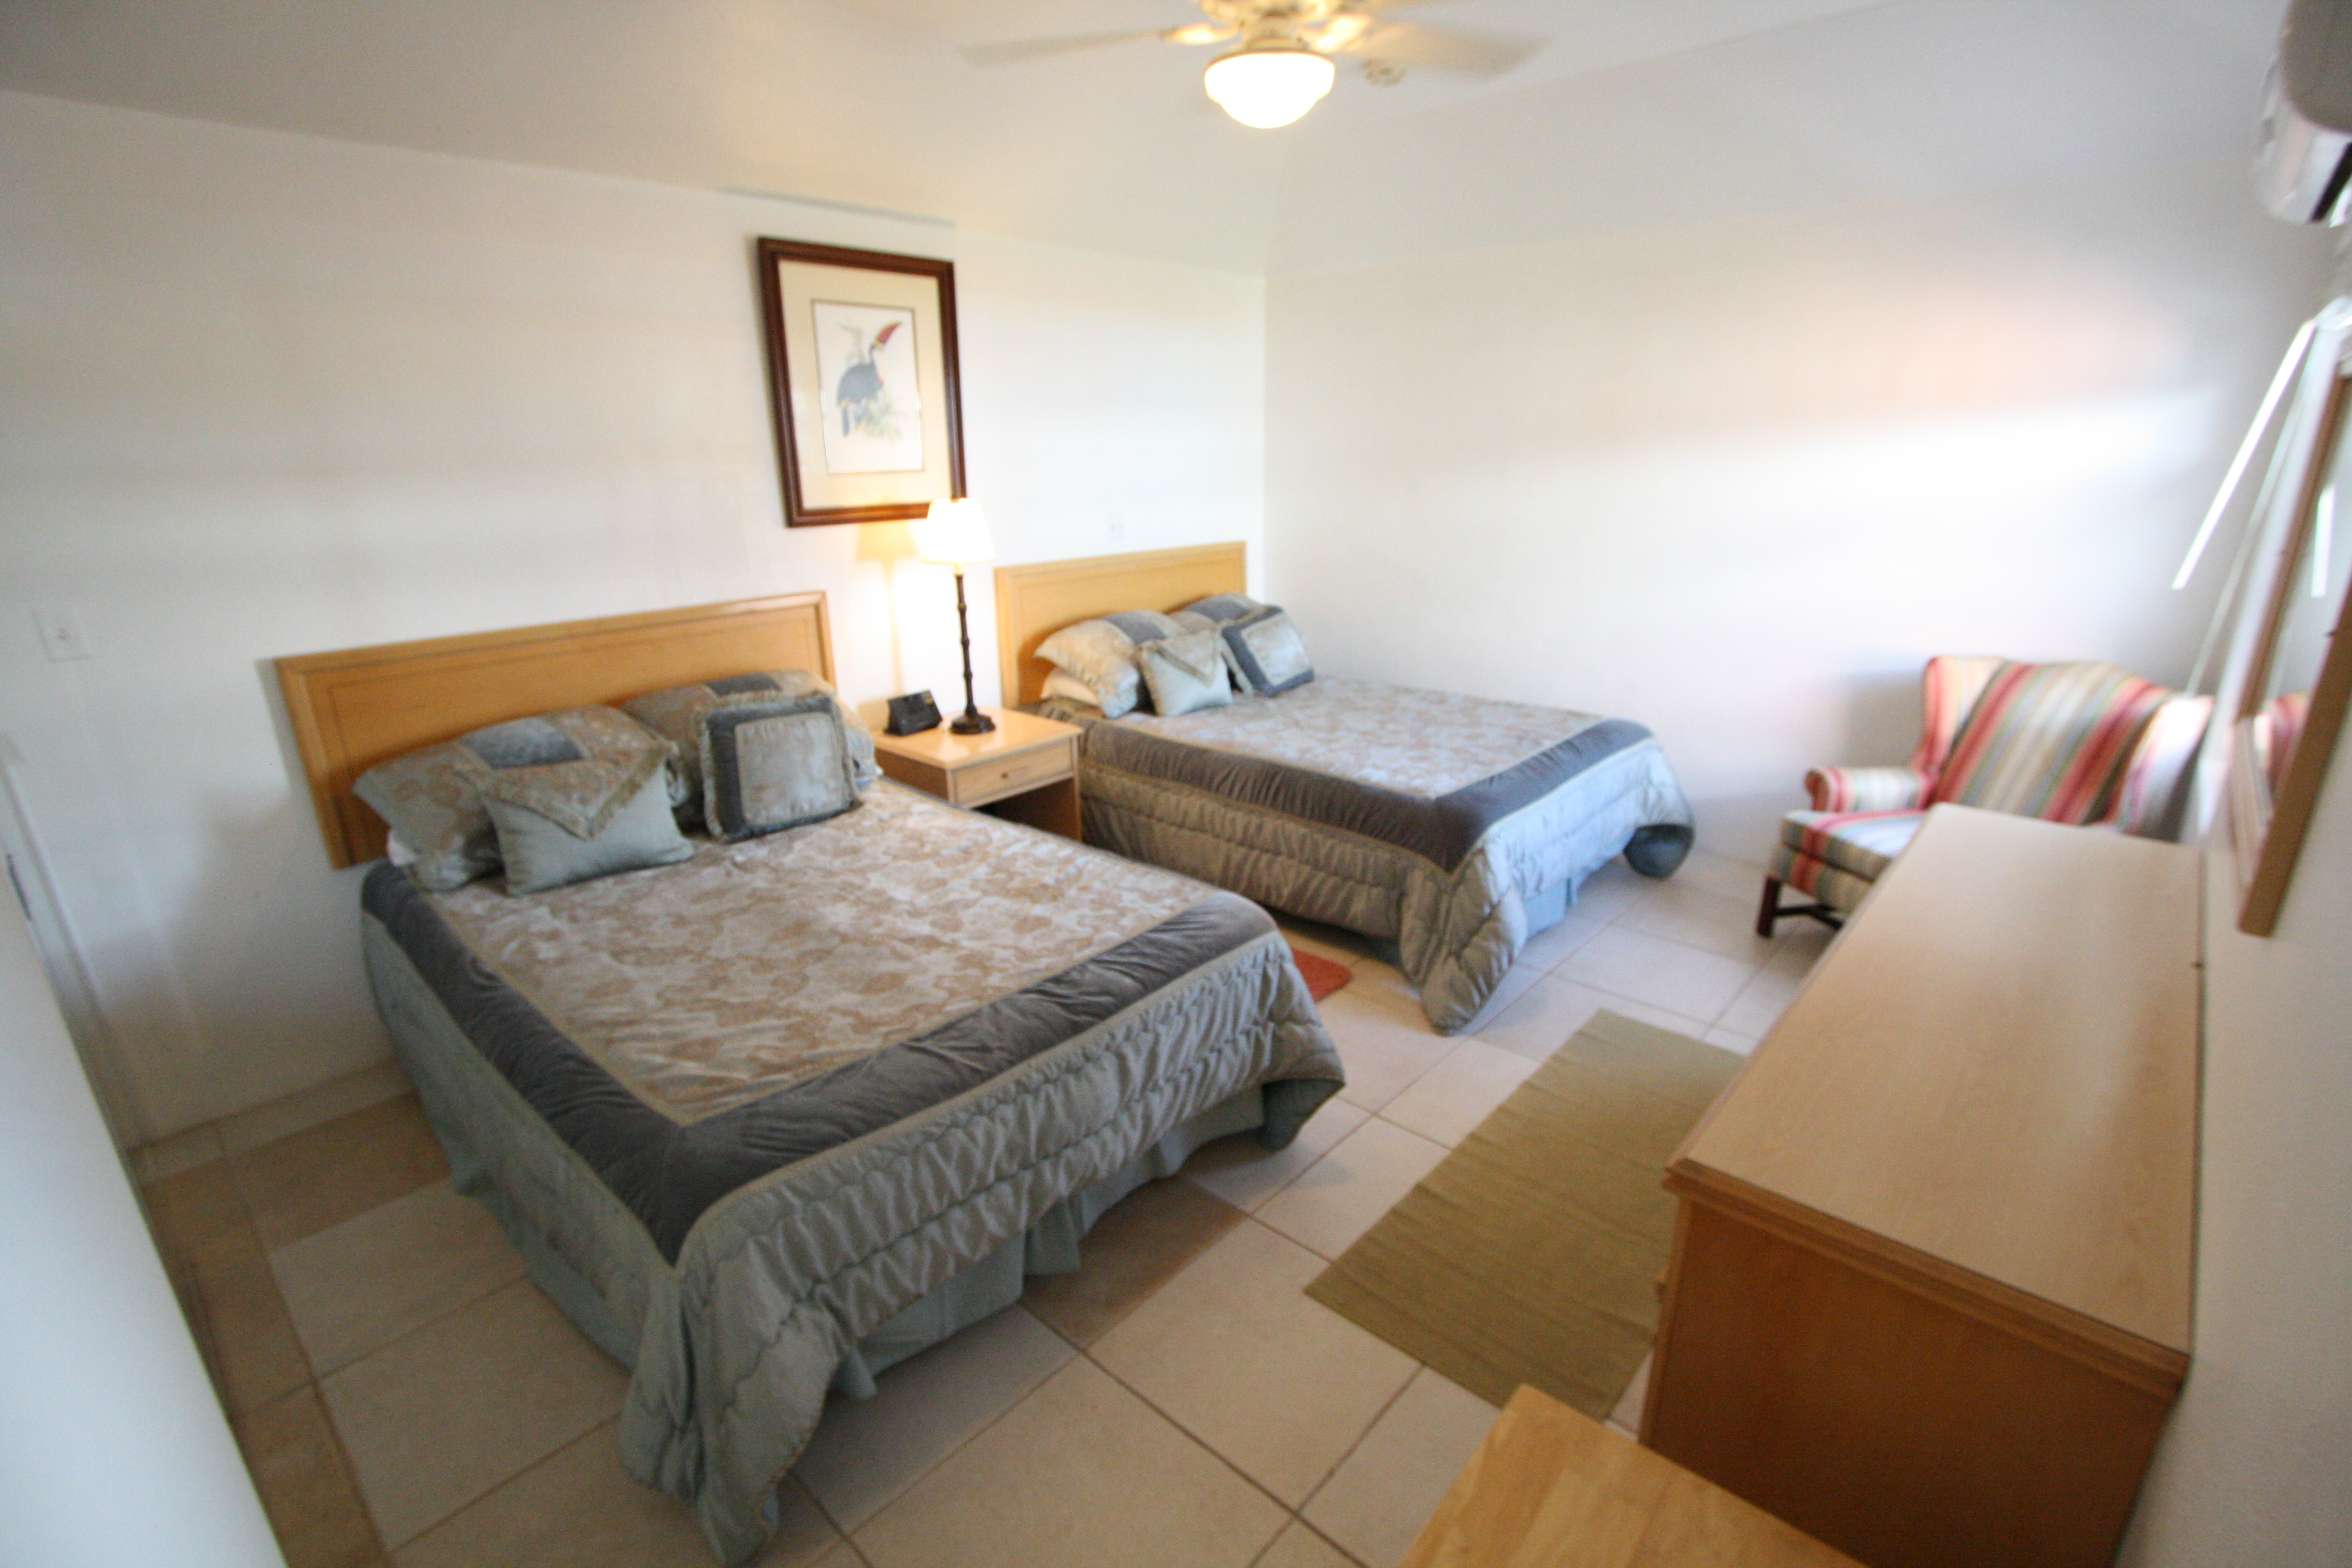 One of the two bedrooms